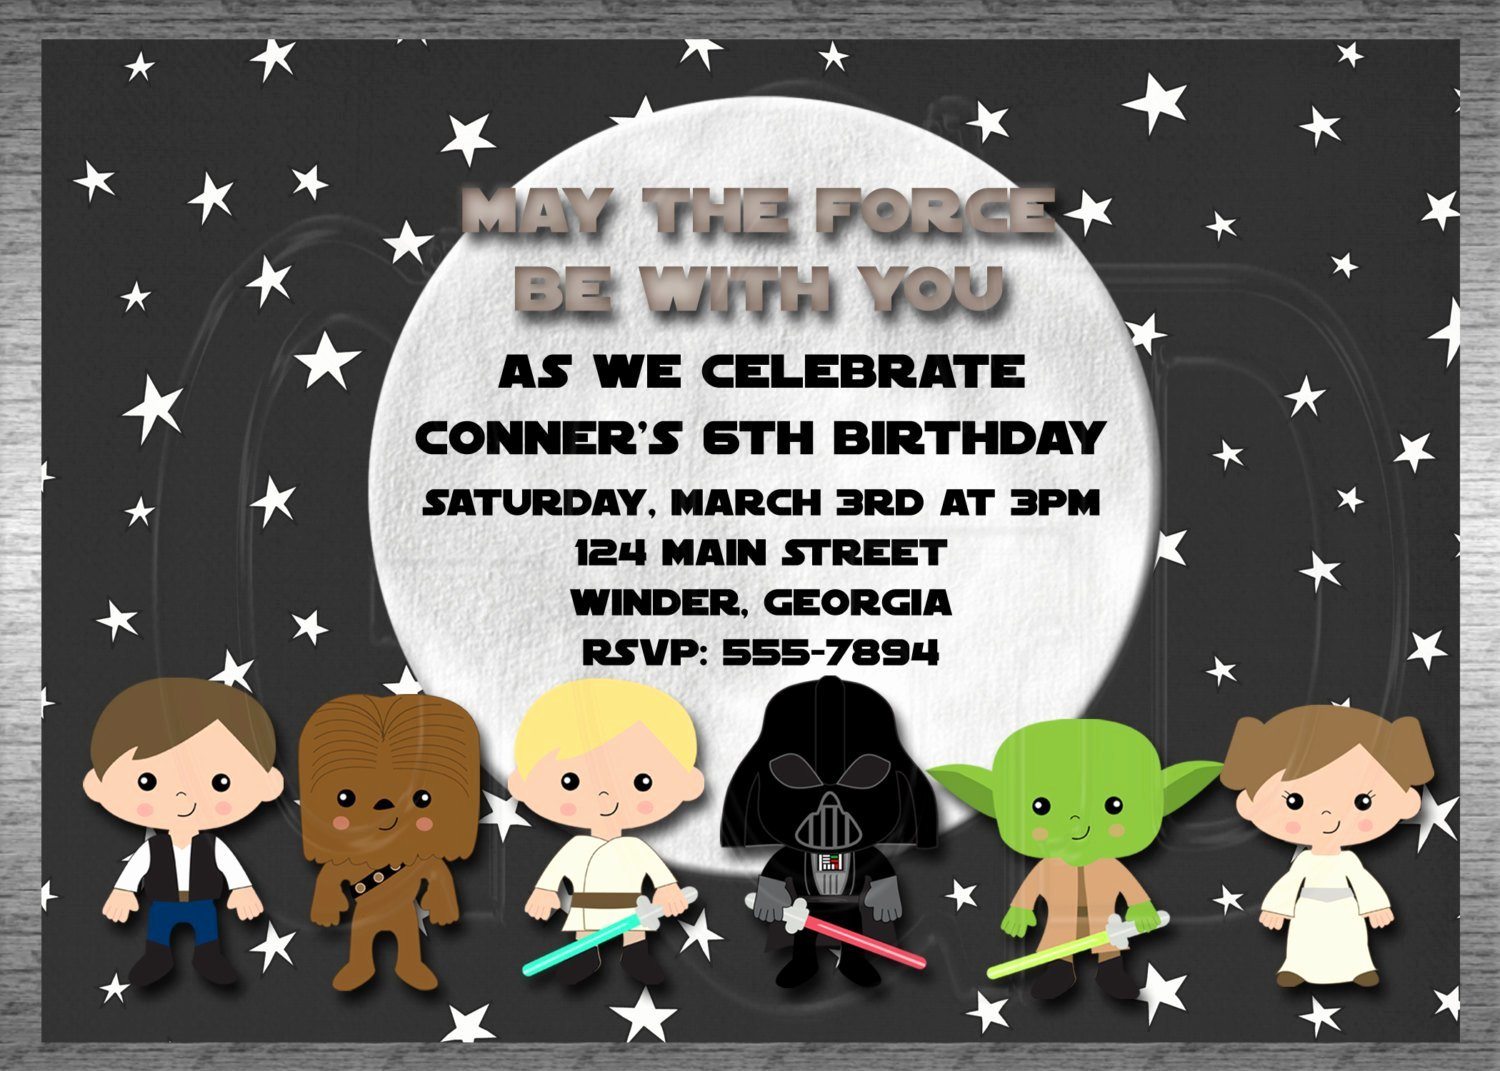 Star Wars Invitations Template Awesome Galaxy Star Wars Invitation Inspired Boy or by